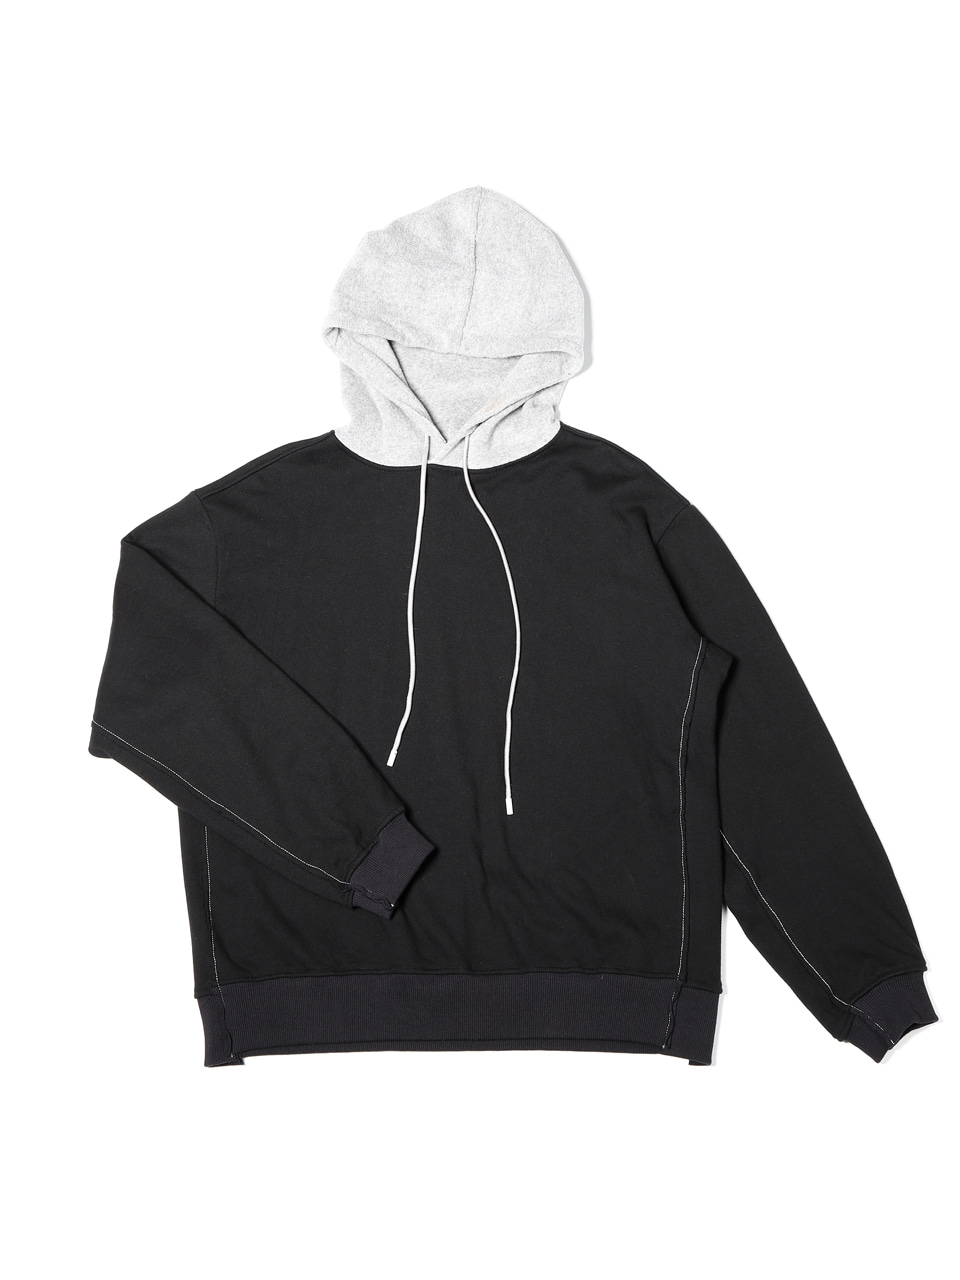 그레이휴Gray Blocked Hoodie, Black